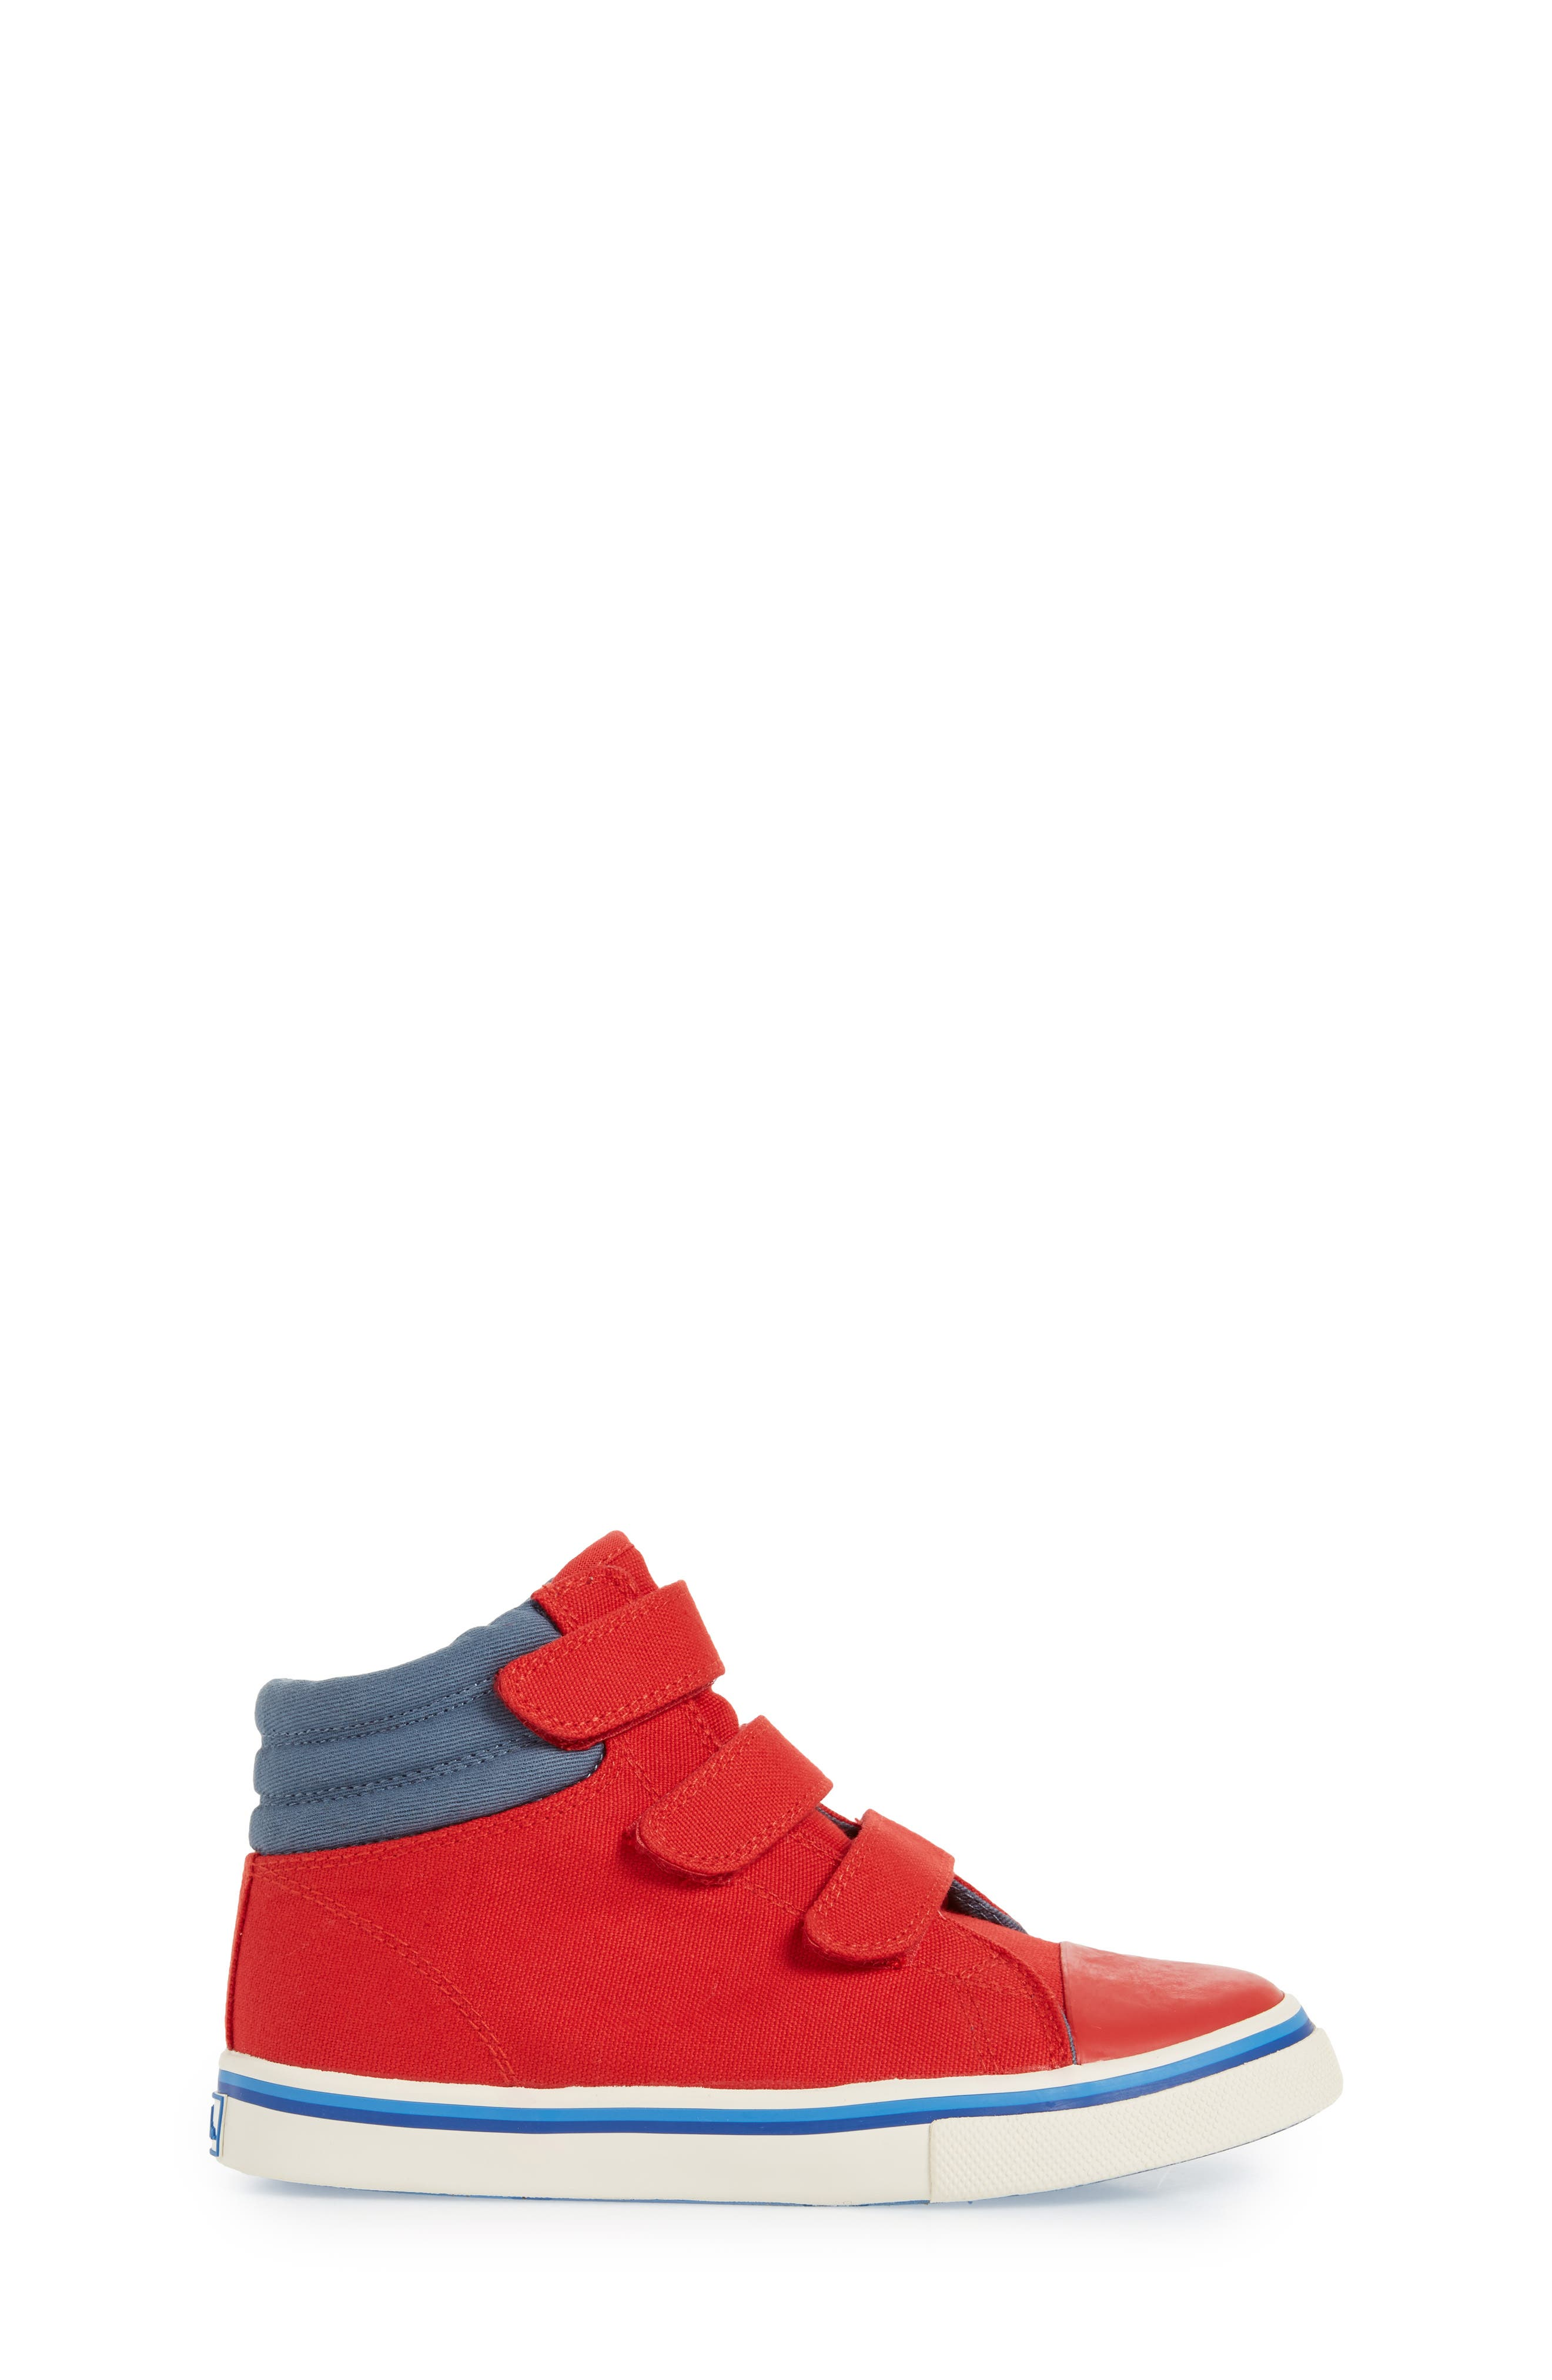 High Top Sneaker,                             Alternate thumbnail 3, color,                             Salsa Red